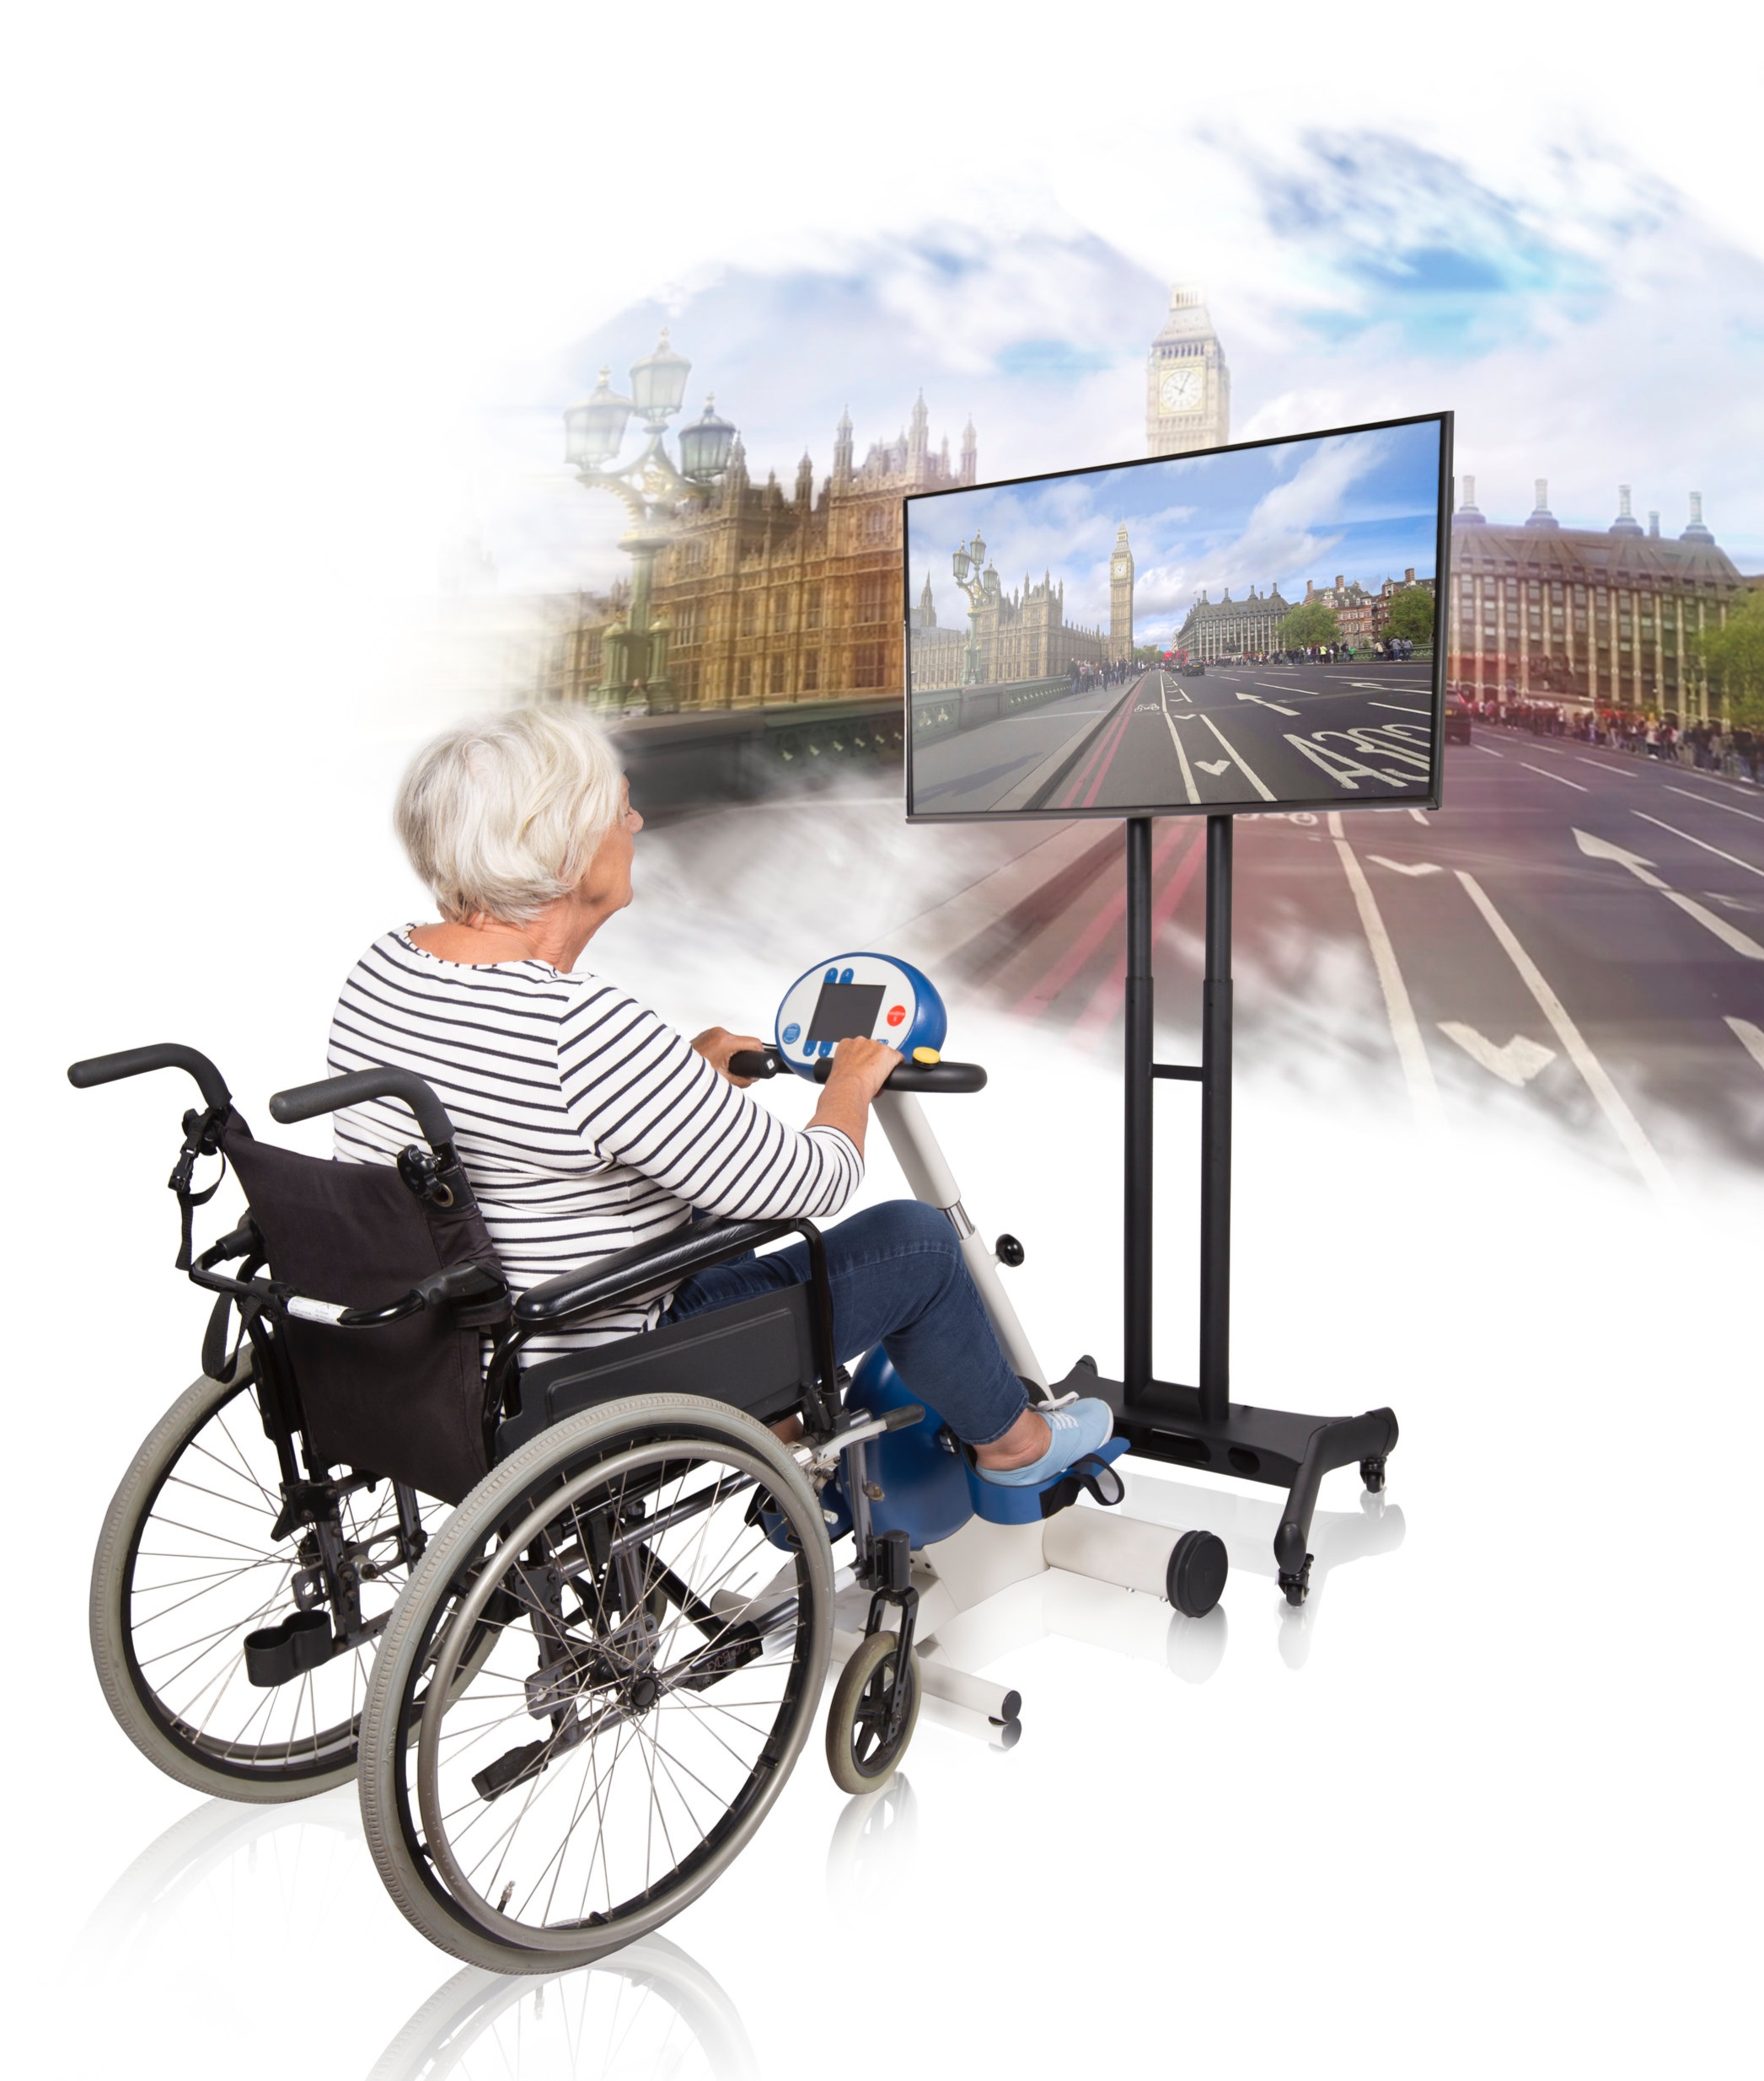 Interactive cycle routes stimulate cognition as well as providing exercise